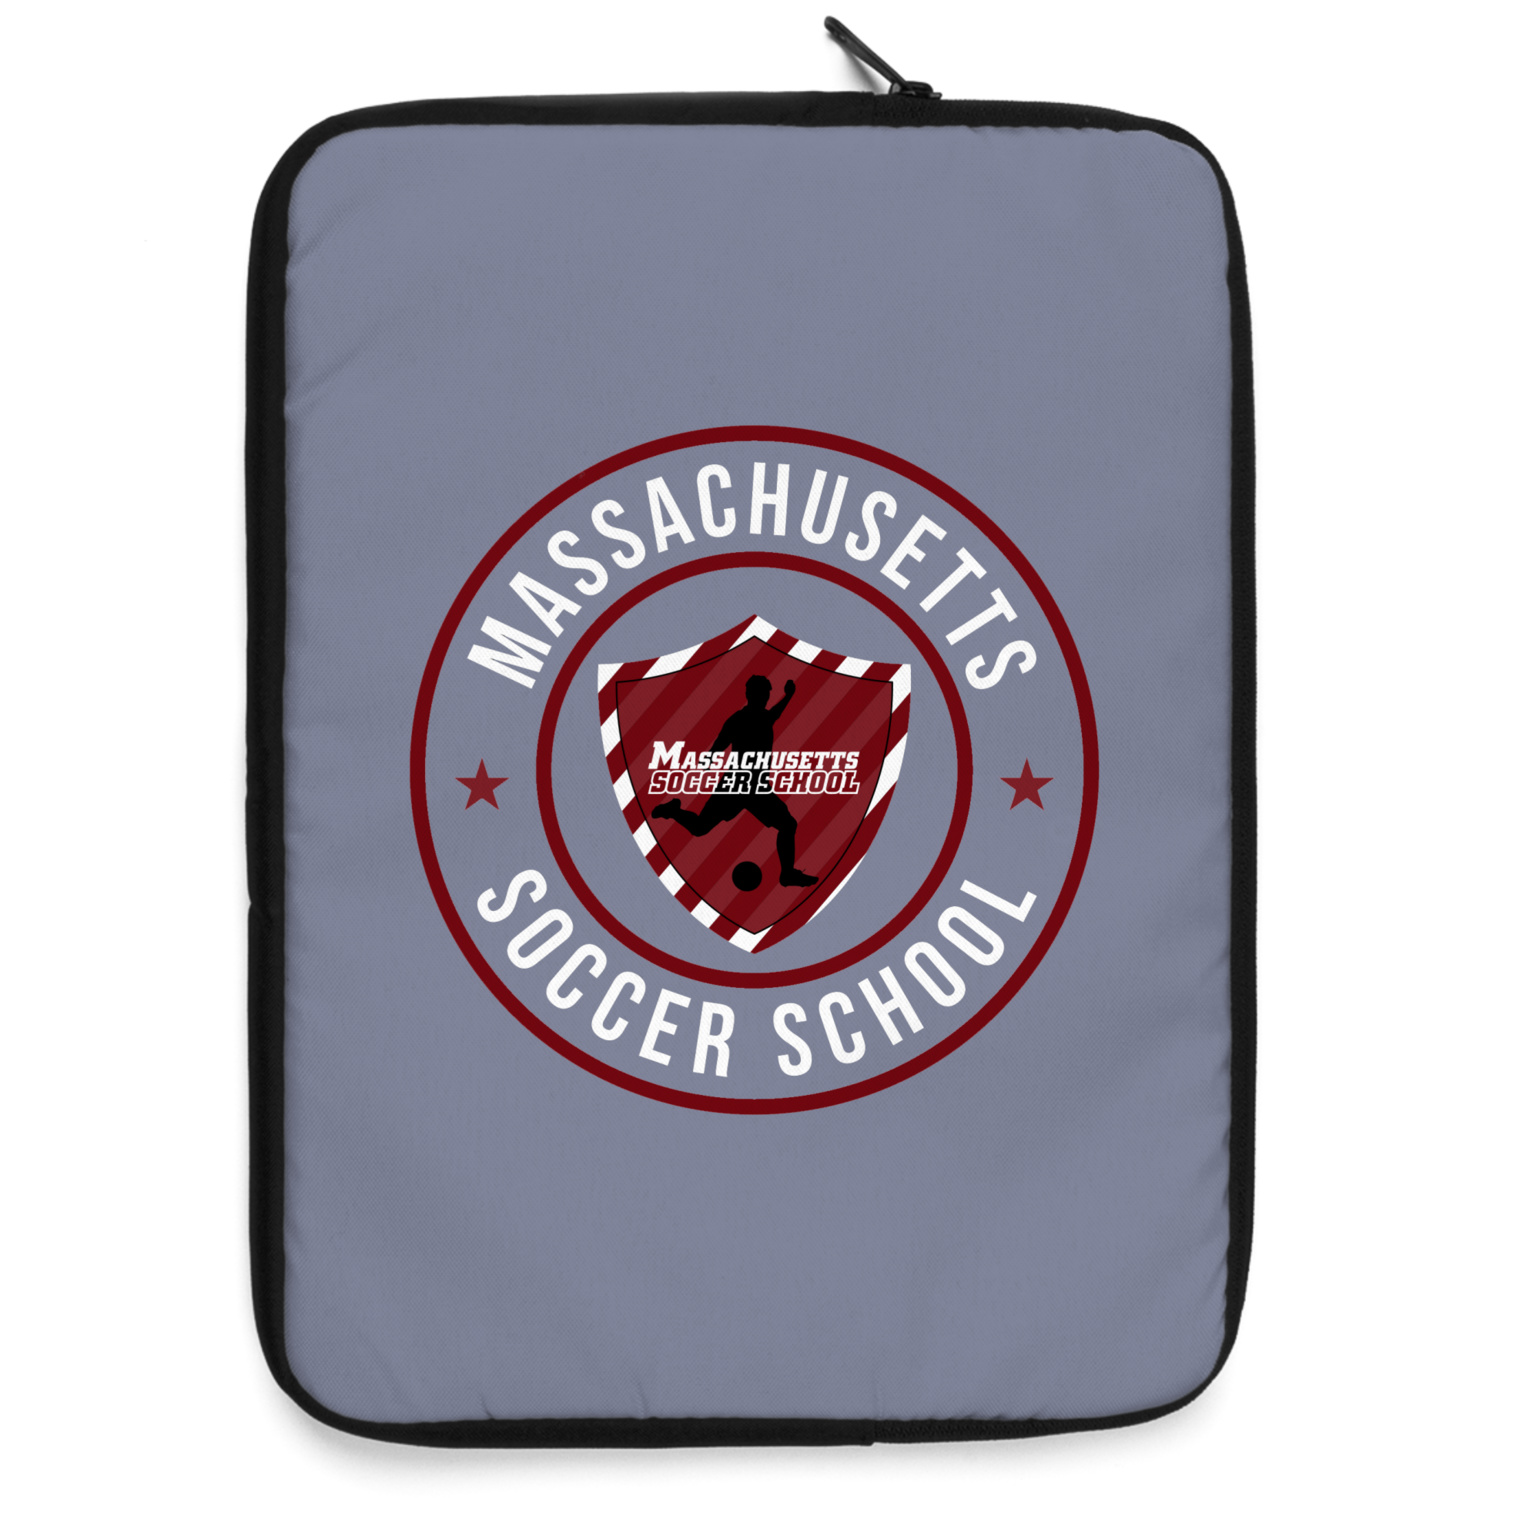 Massachusetts Soccer School Laptop Sleeve